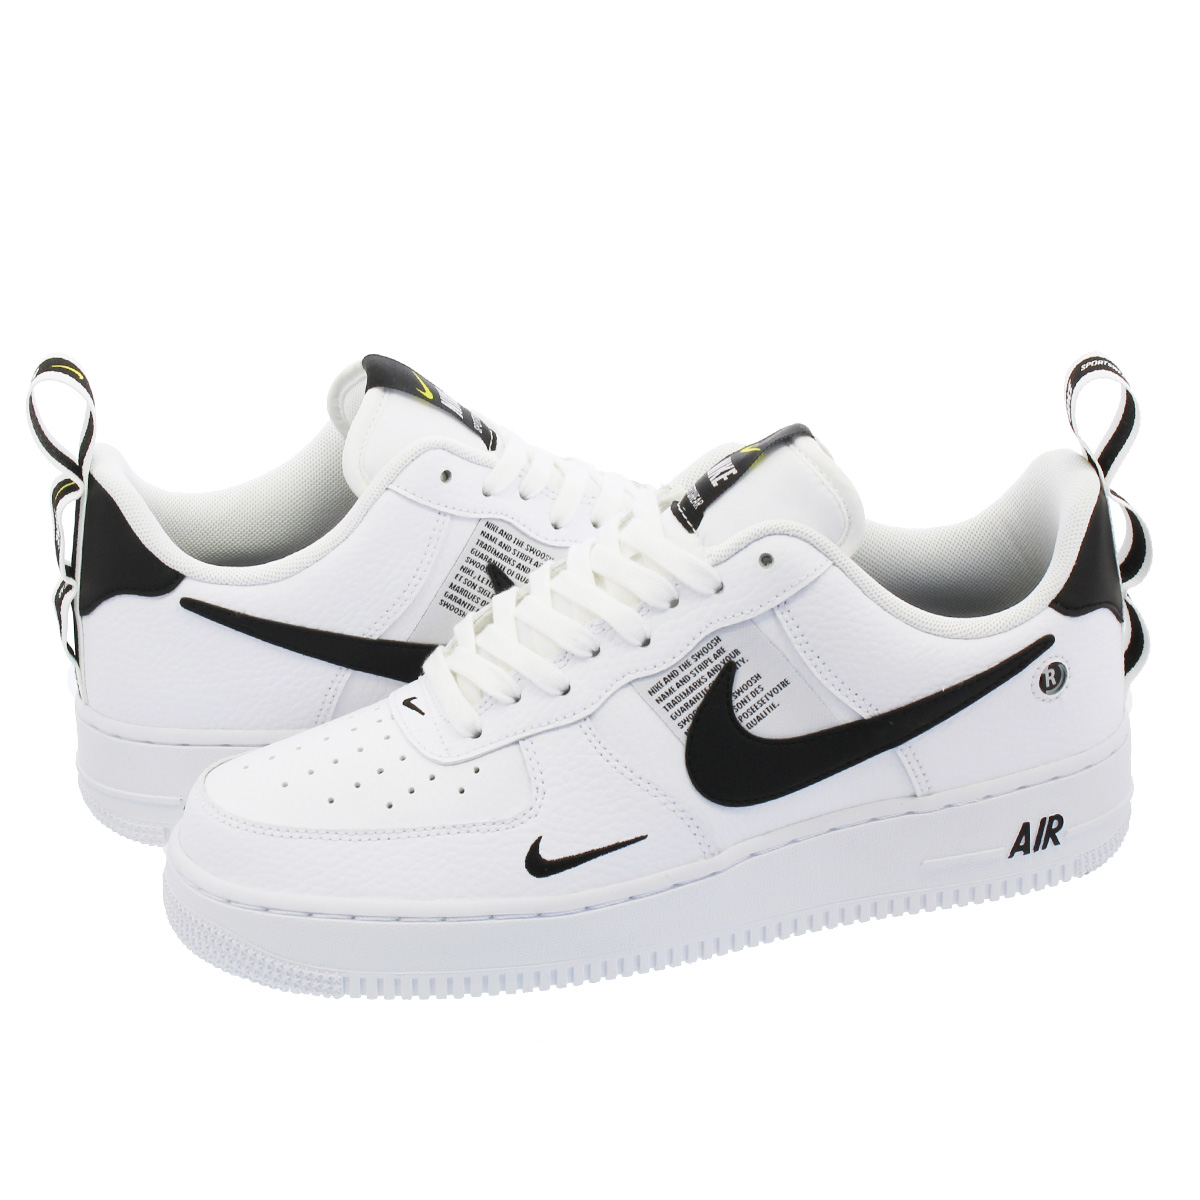 new product 06552 e1294 NIKE AIR FORCE 1  07 LV8 UTILITY Nike air force 1  07 LV8 utility ...